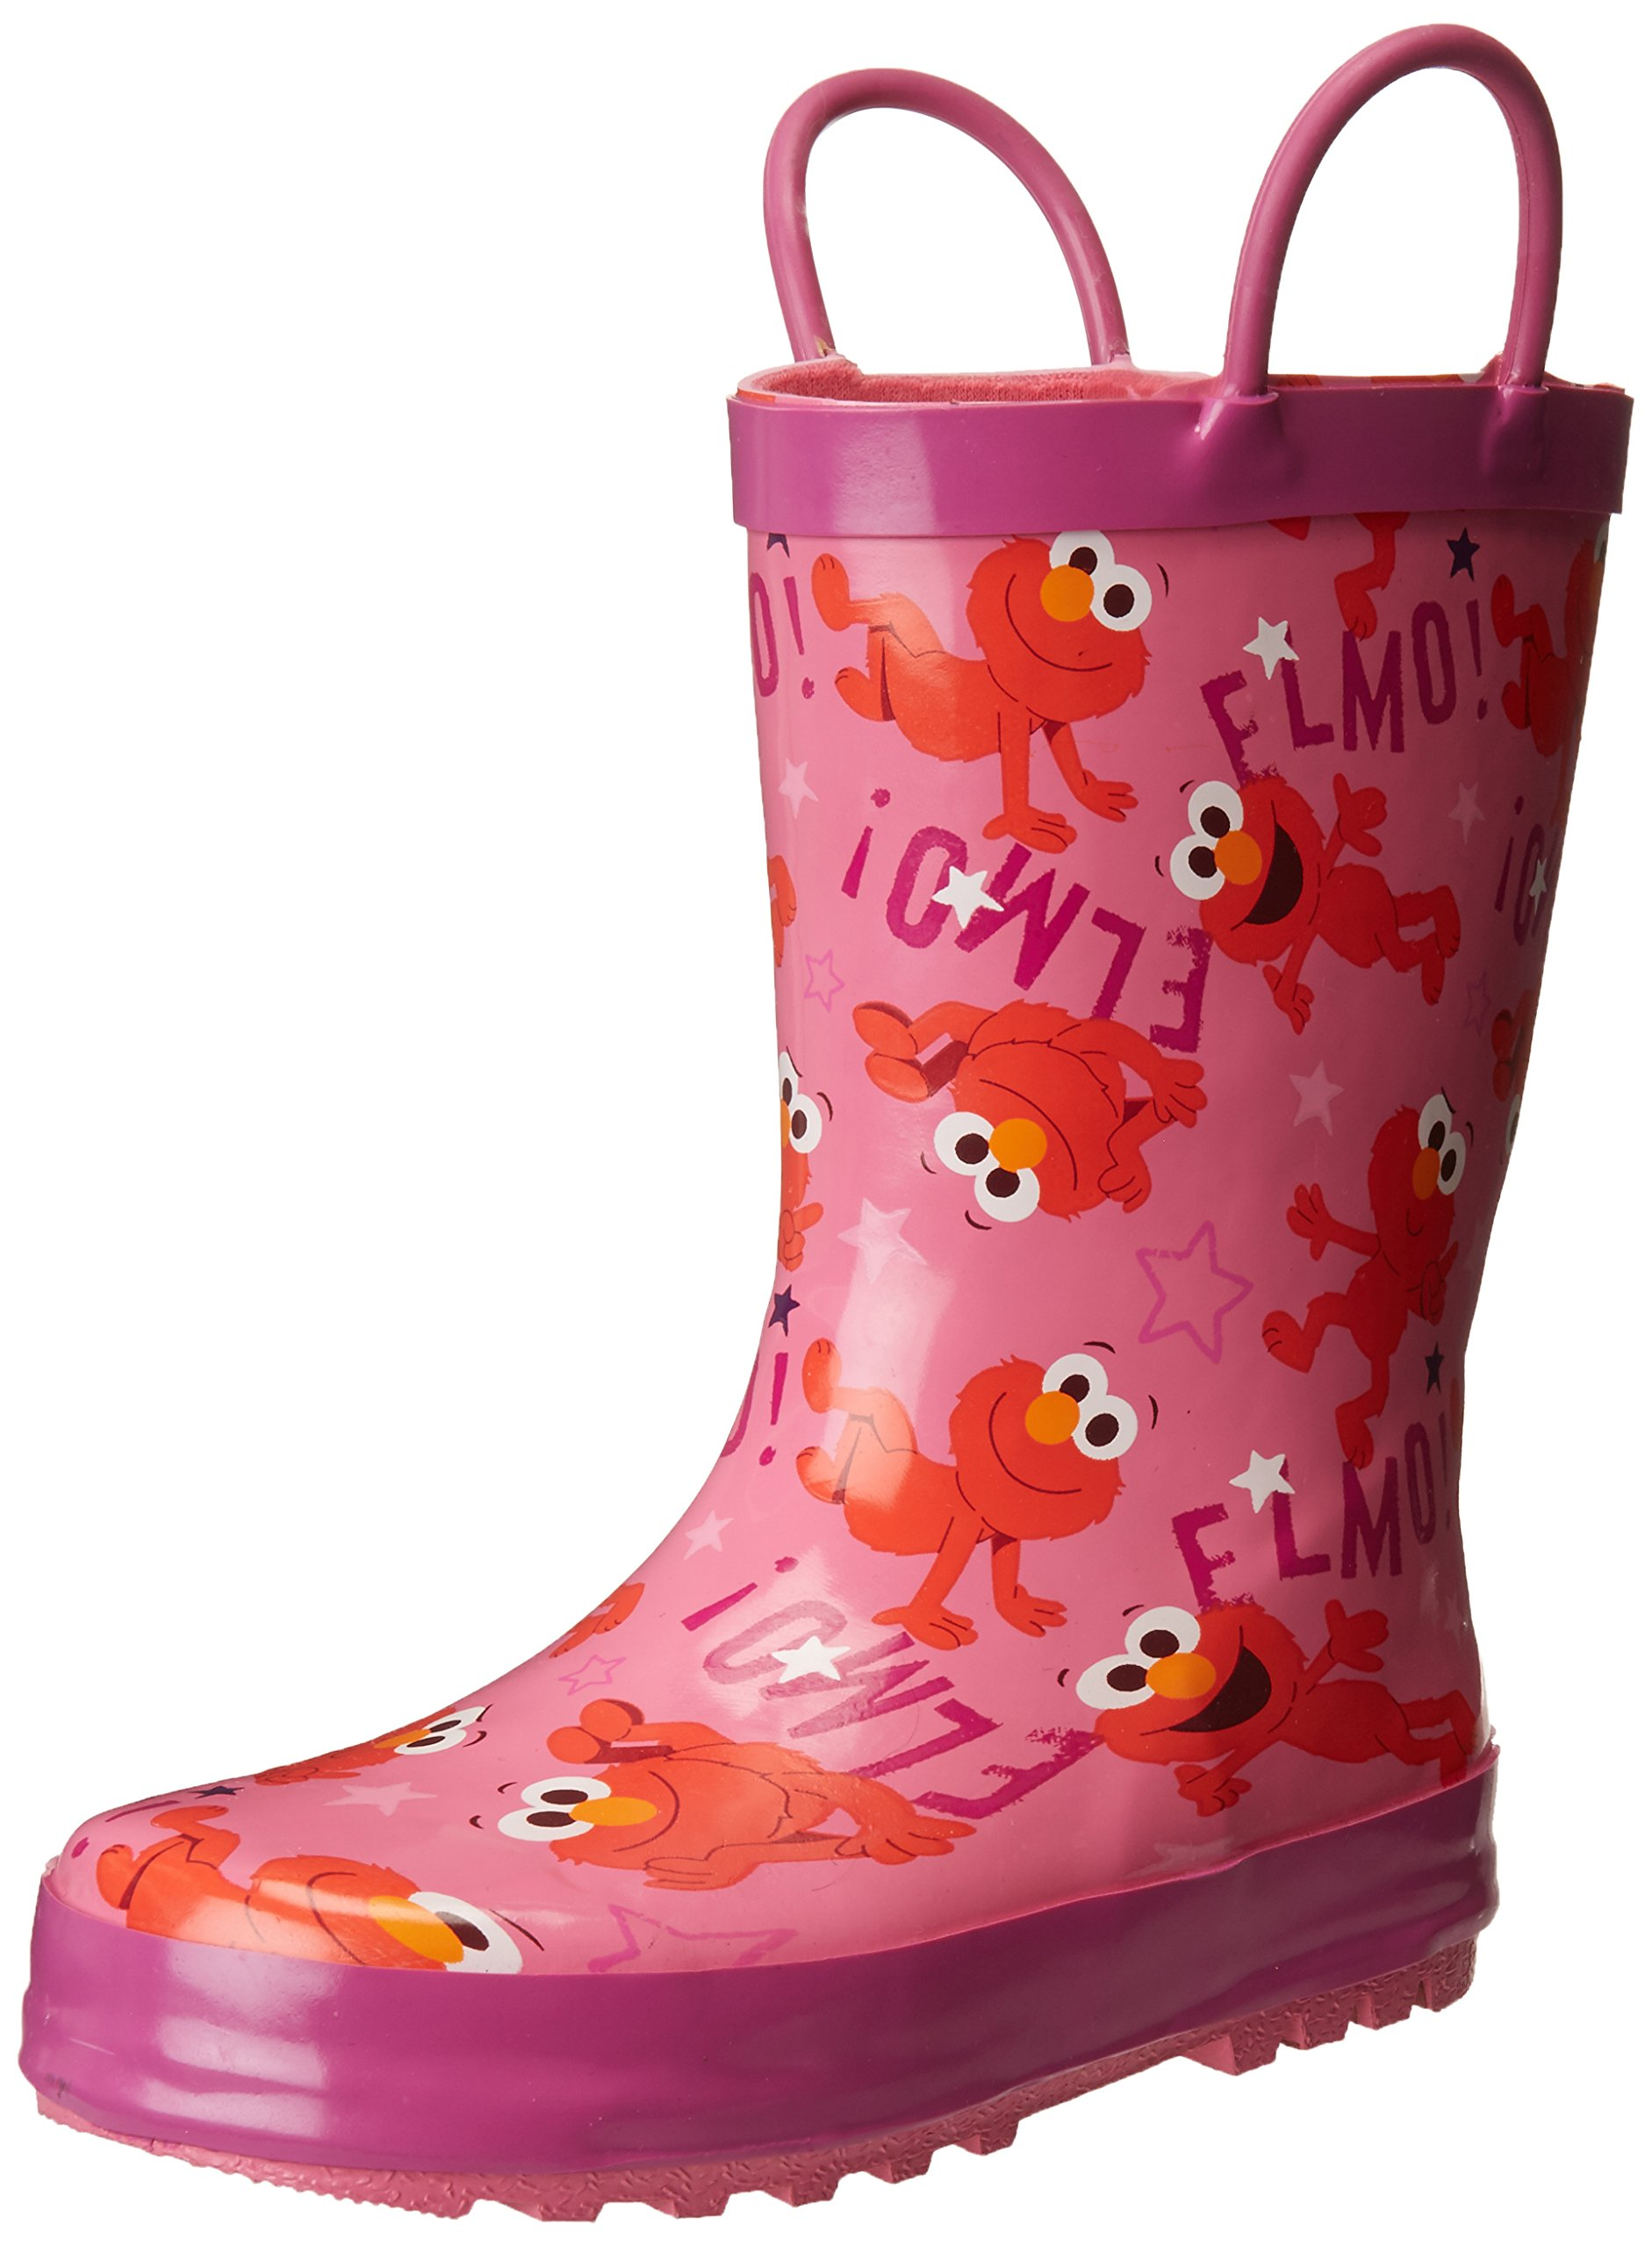 Sesame Street Girls' Kid's Character Licensed Rain Boot, Pink, Dual Shoe Size 5/6 Child US Toddler